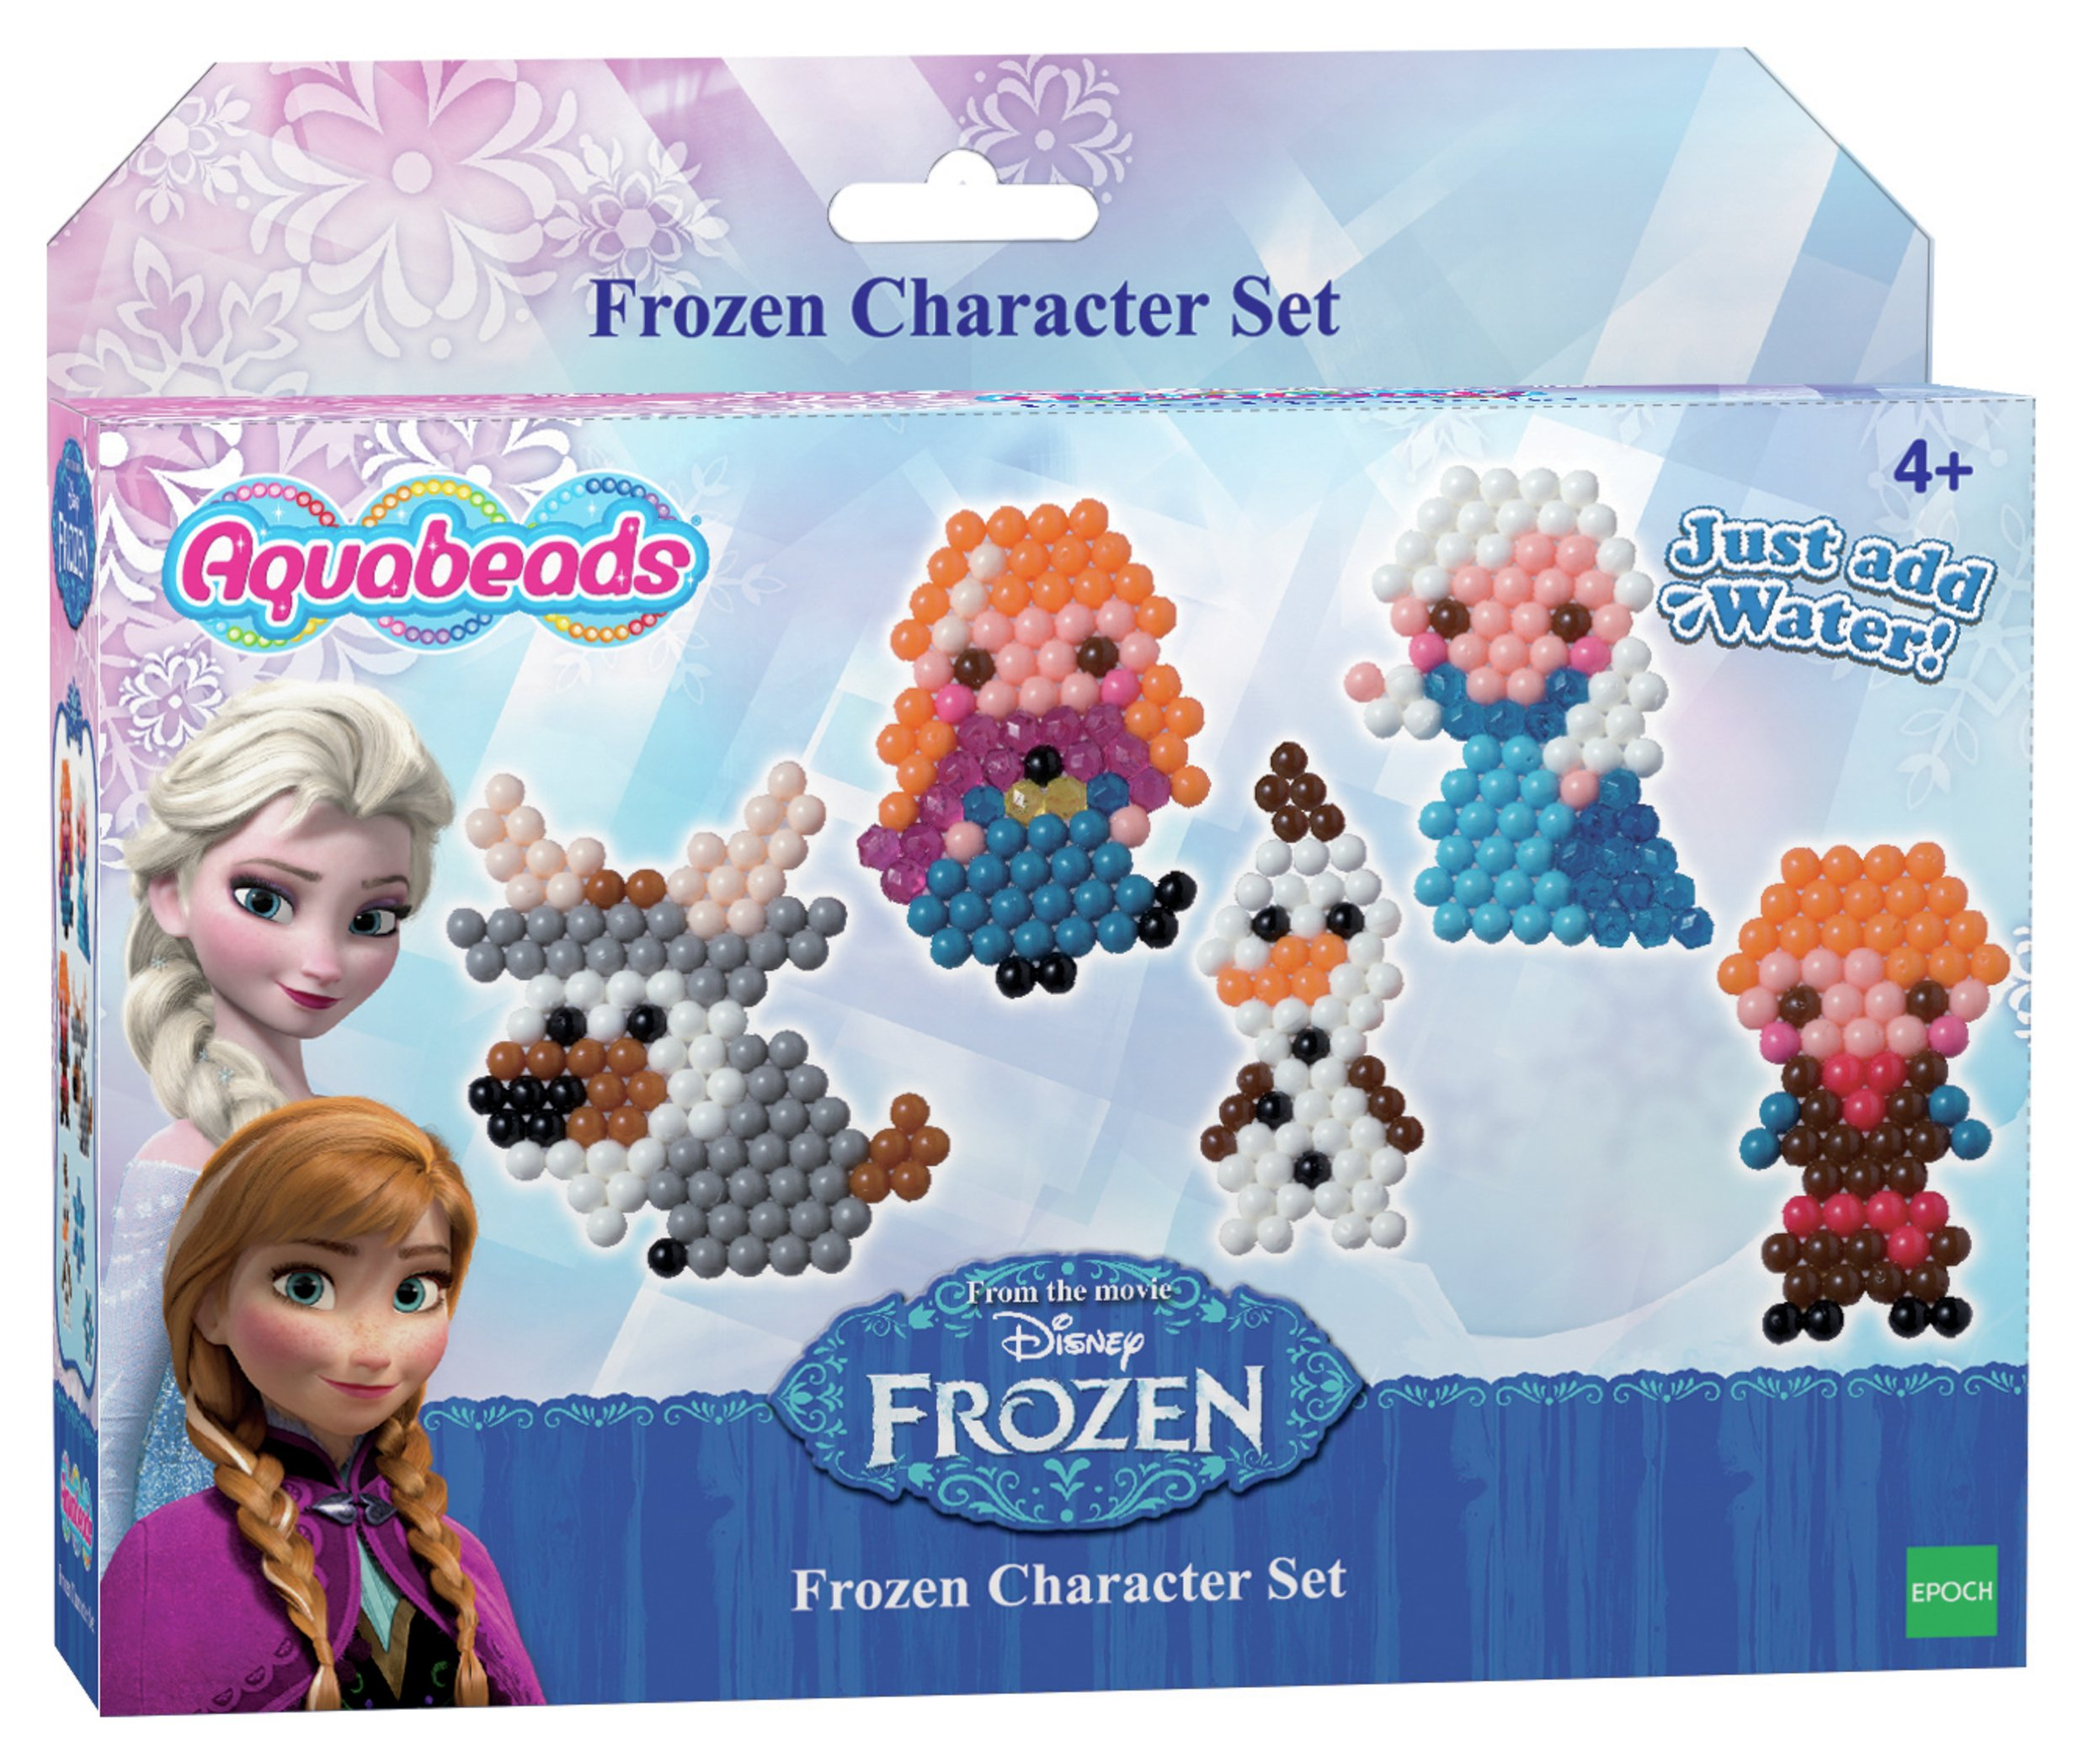 Image of Aquabeads Frozen Character Playset.